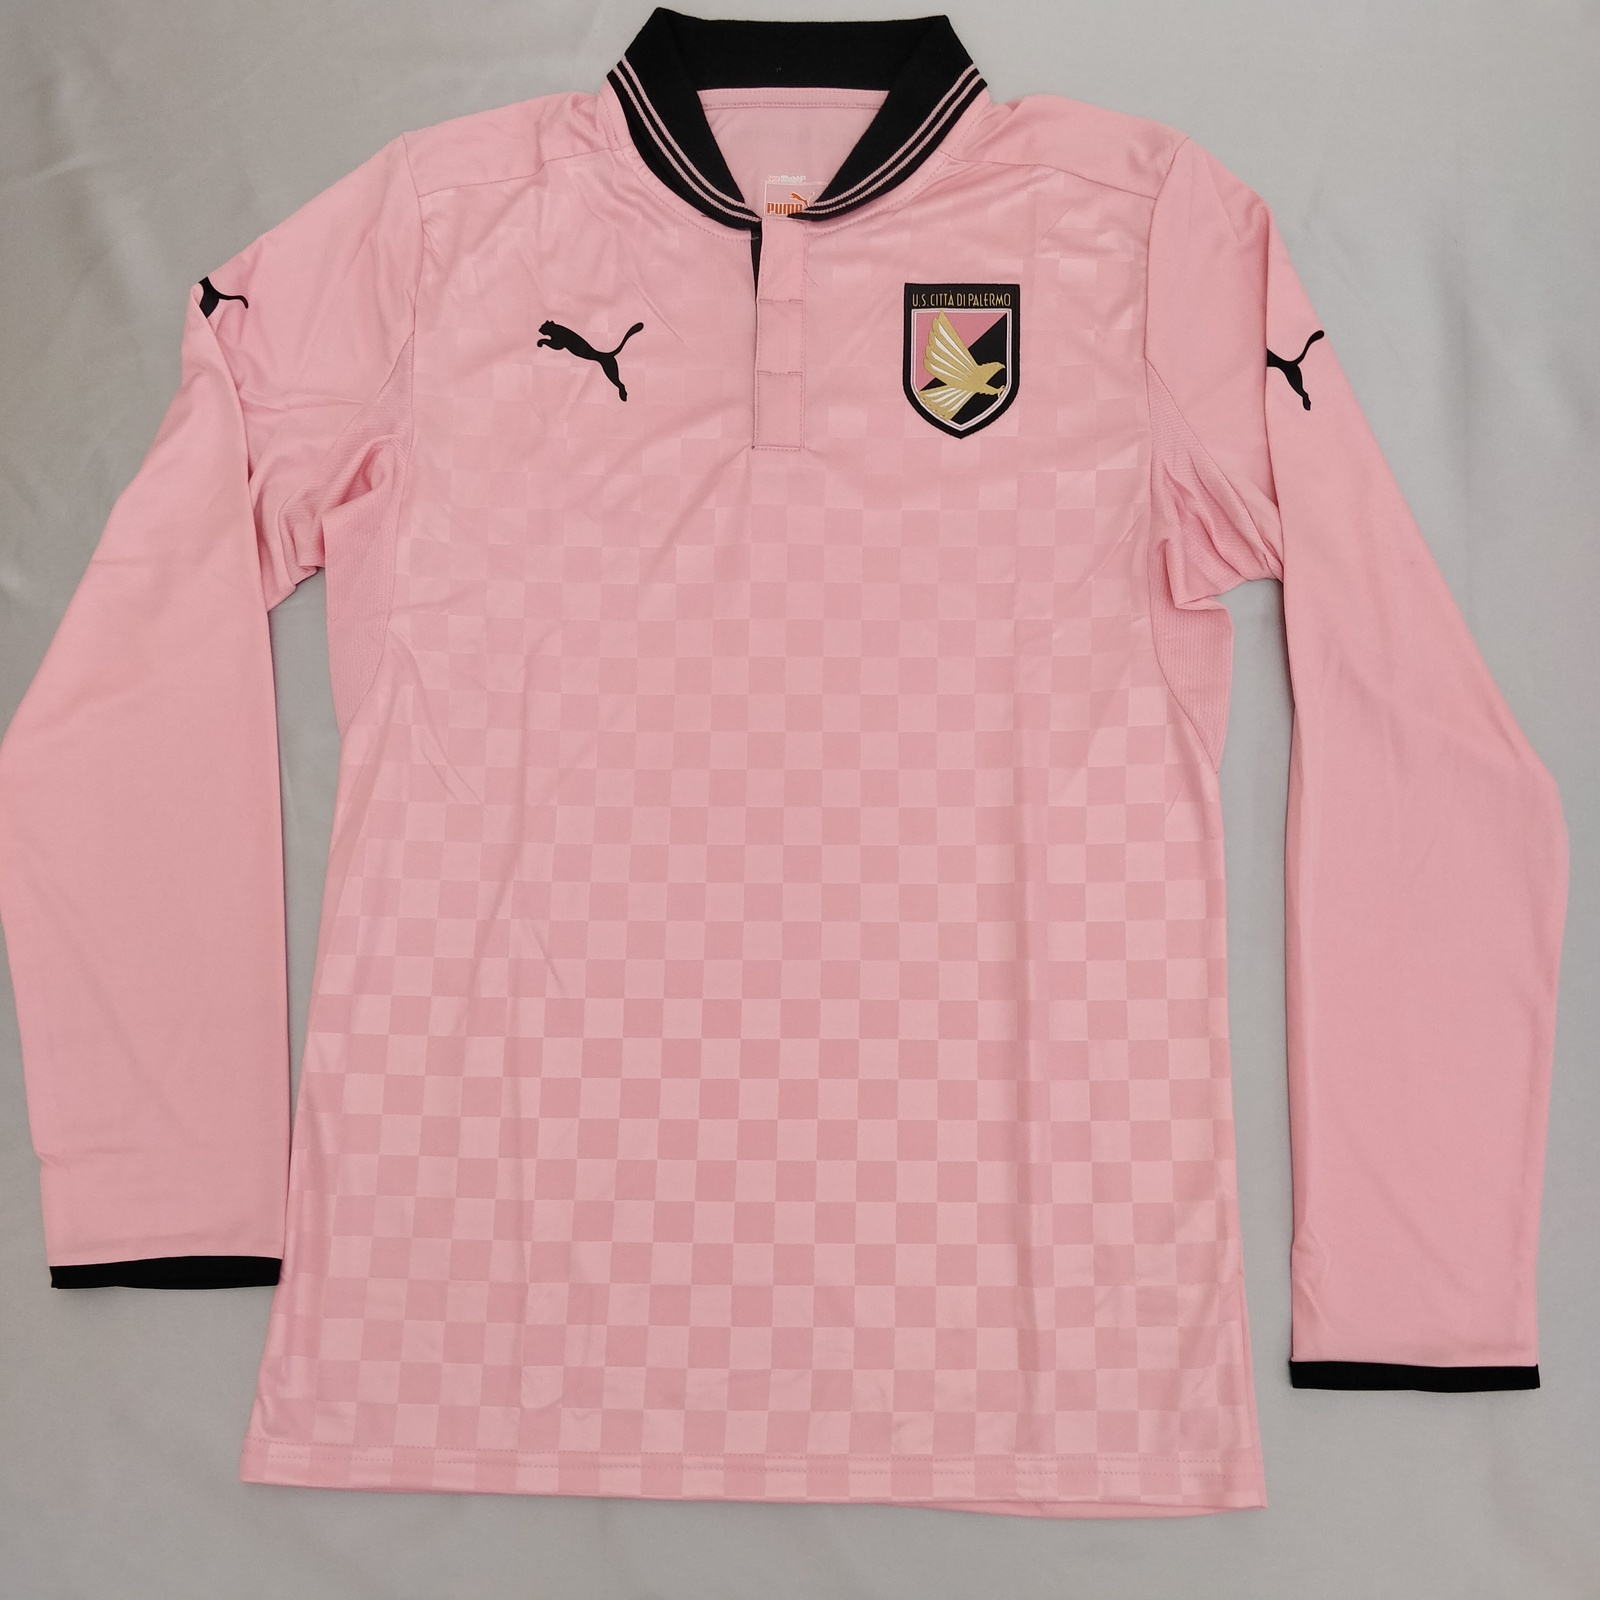 Primary image for Palermo 2012/13 Home Jersey Puma Promo Version %100 Authentic